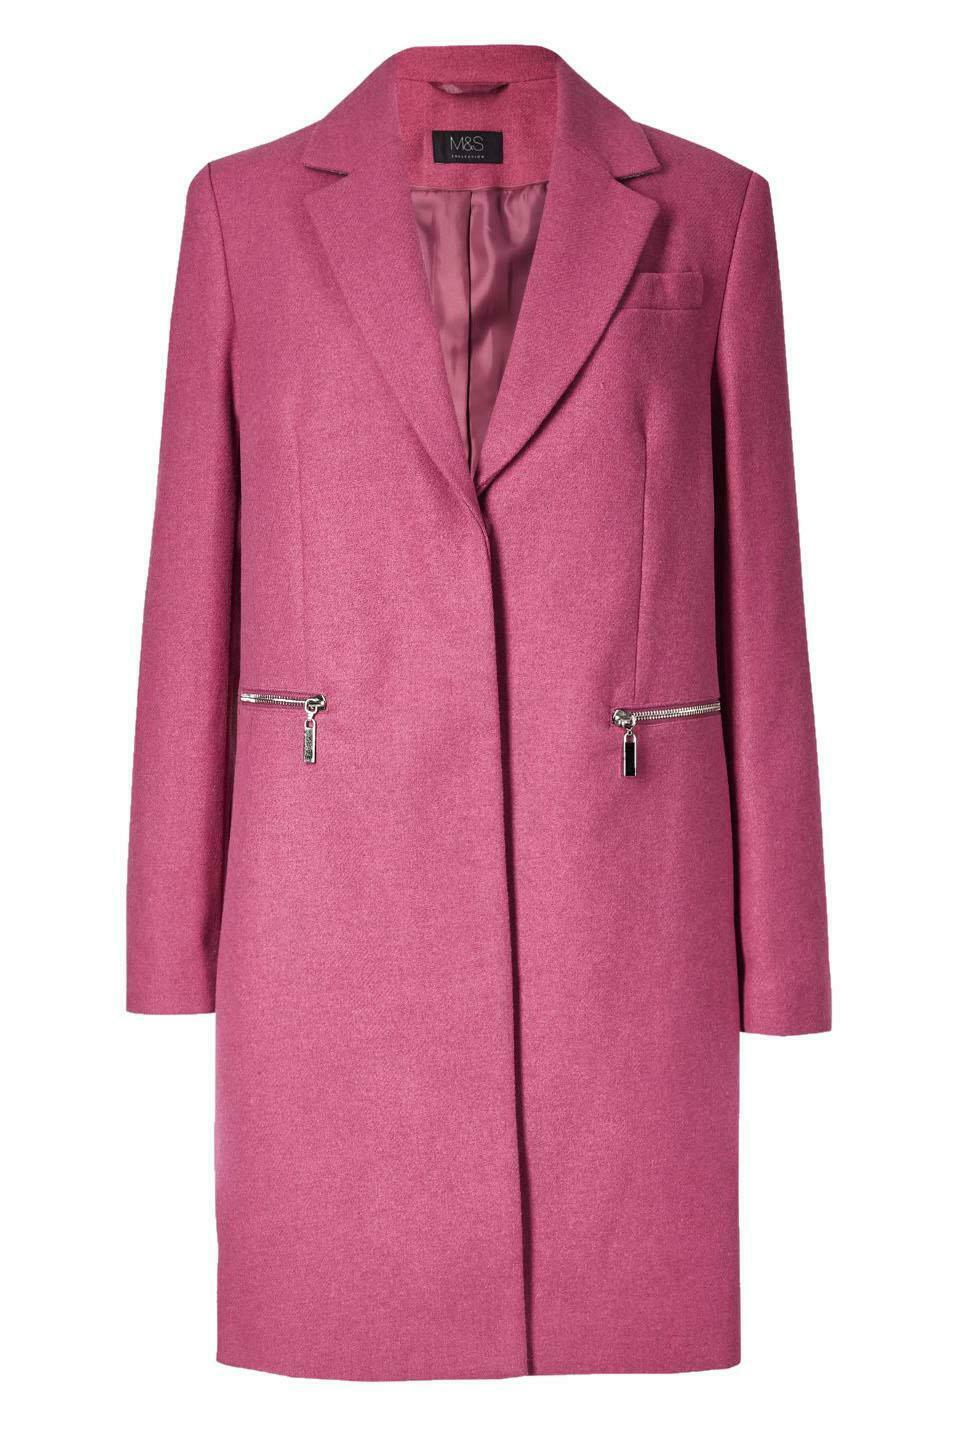 M-amp-S-Wool-Blend-Single-Breasted-Pink-Brown-Winter-Coat-Holly-Willoughby-Size-6-24 thumbnail 44